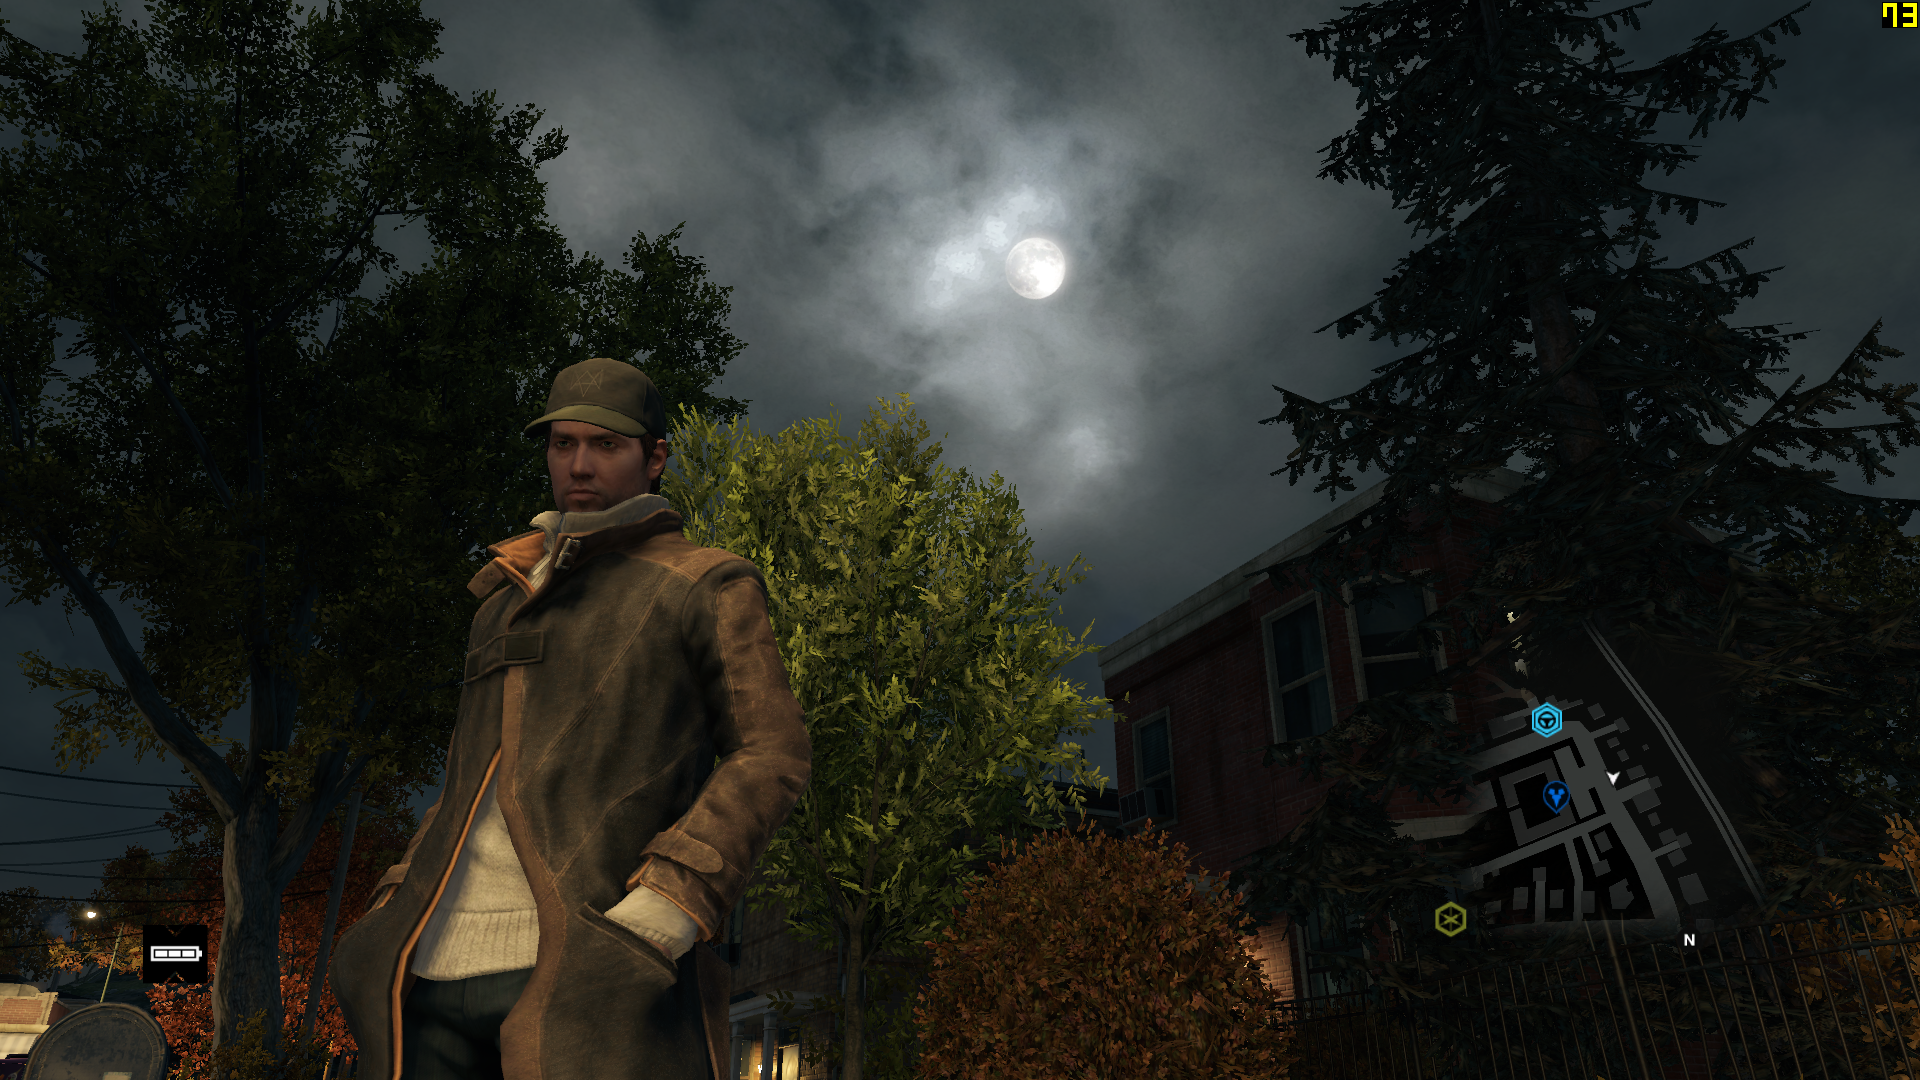 watch_dogs--004xypqa.png